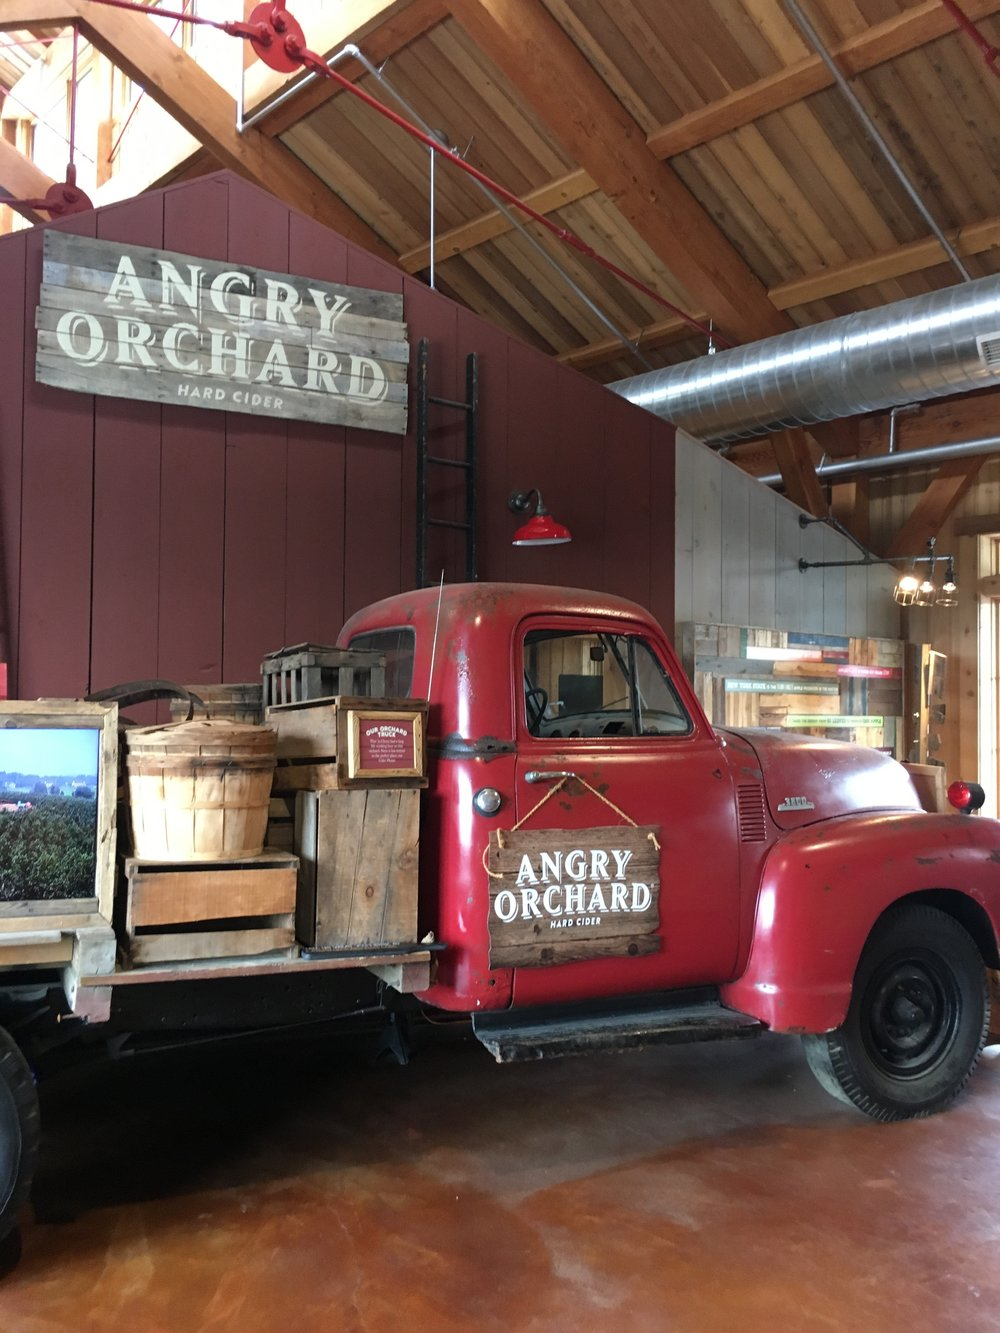 Angry Orchard in Walden, NY